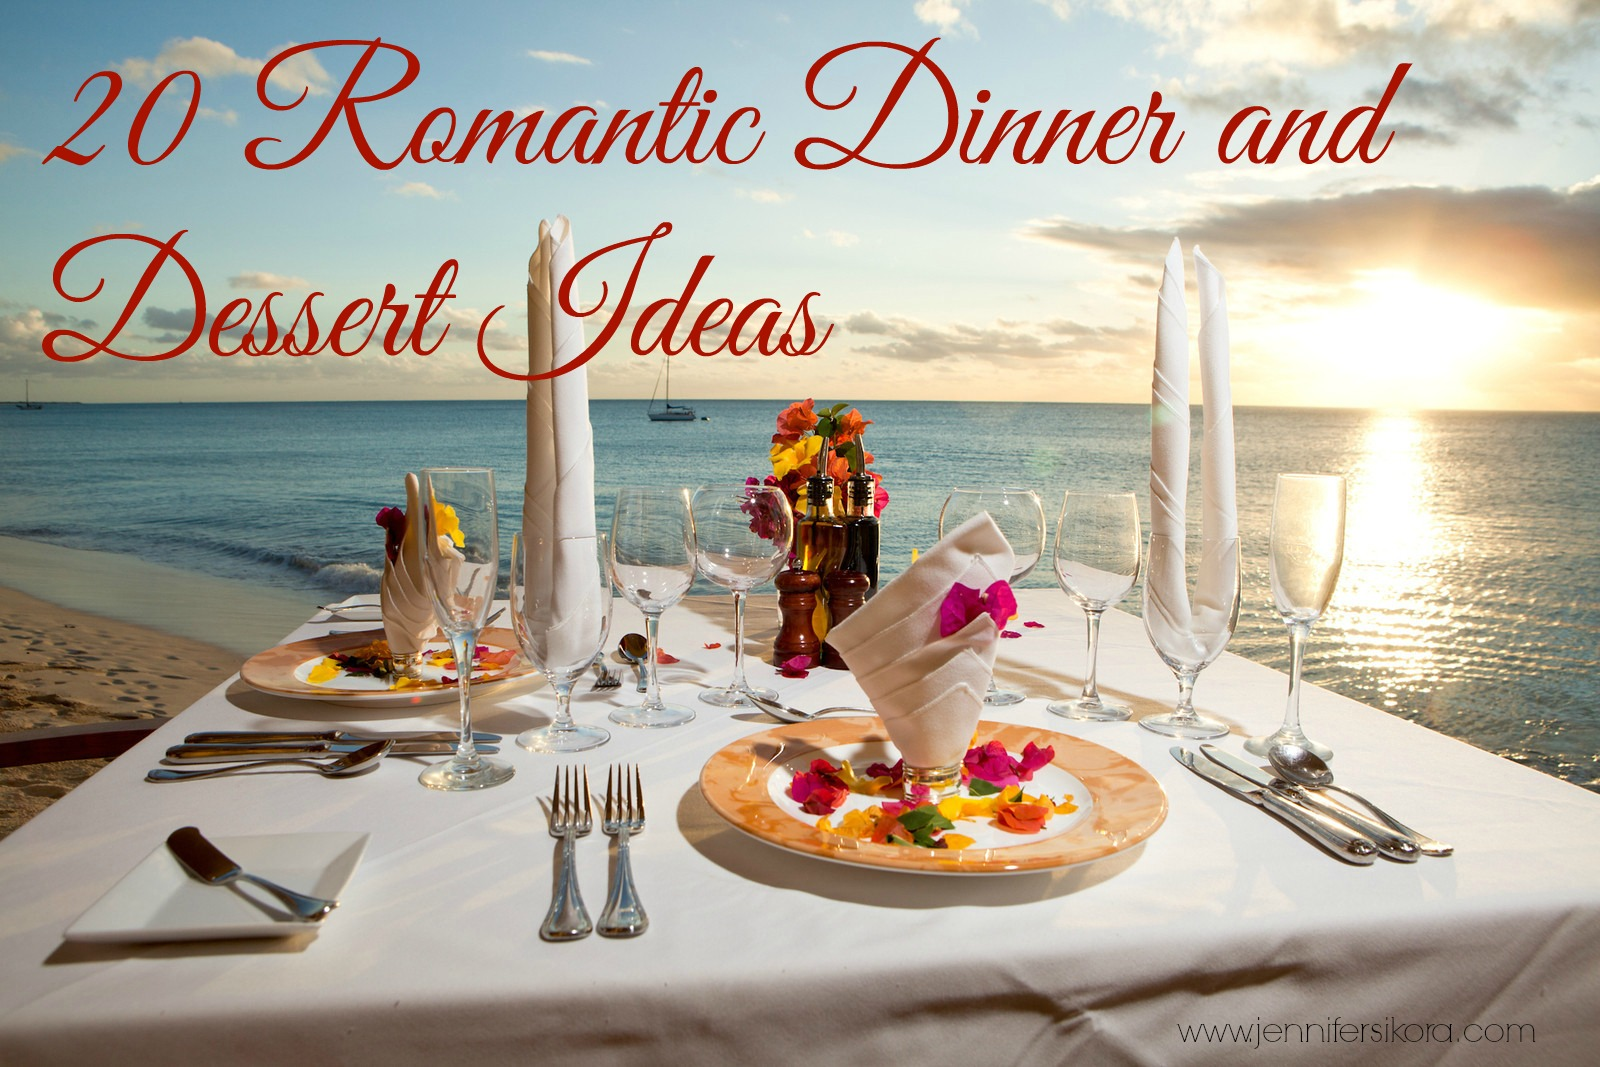 20 Romantic Dinner and Dessert Ideas on Foodie.com